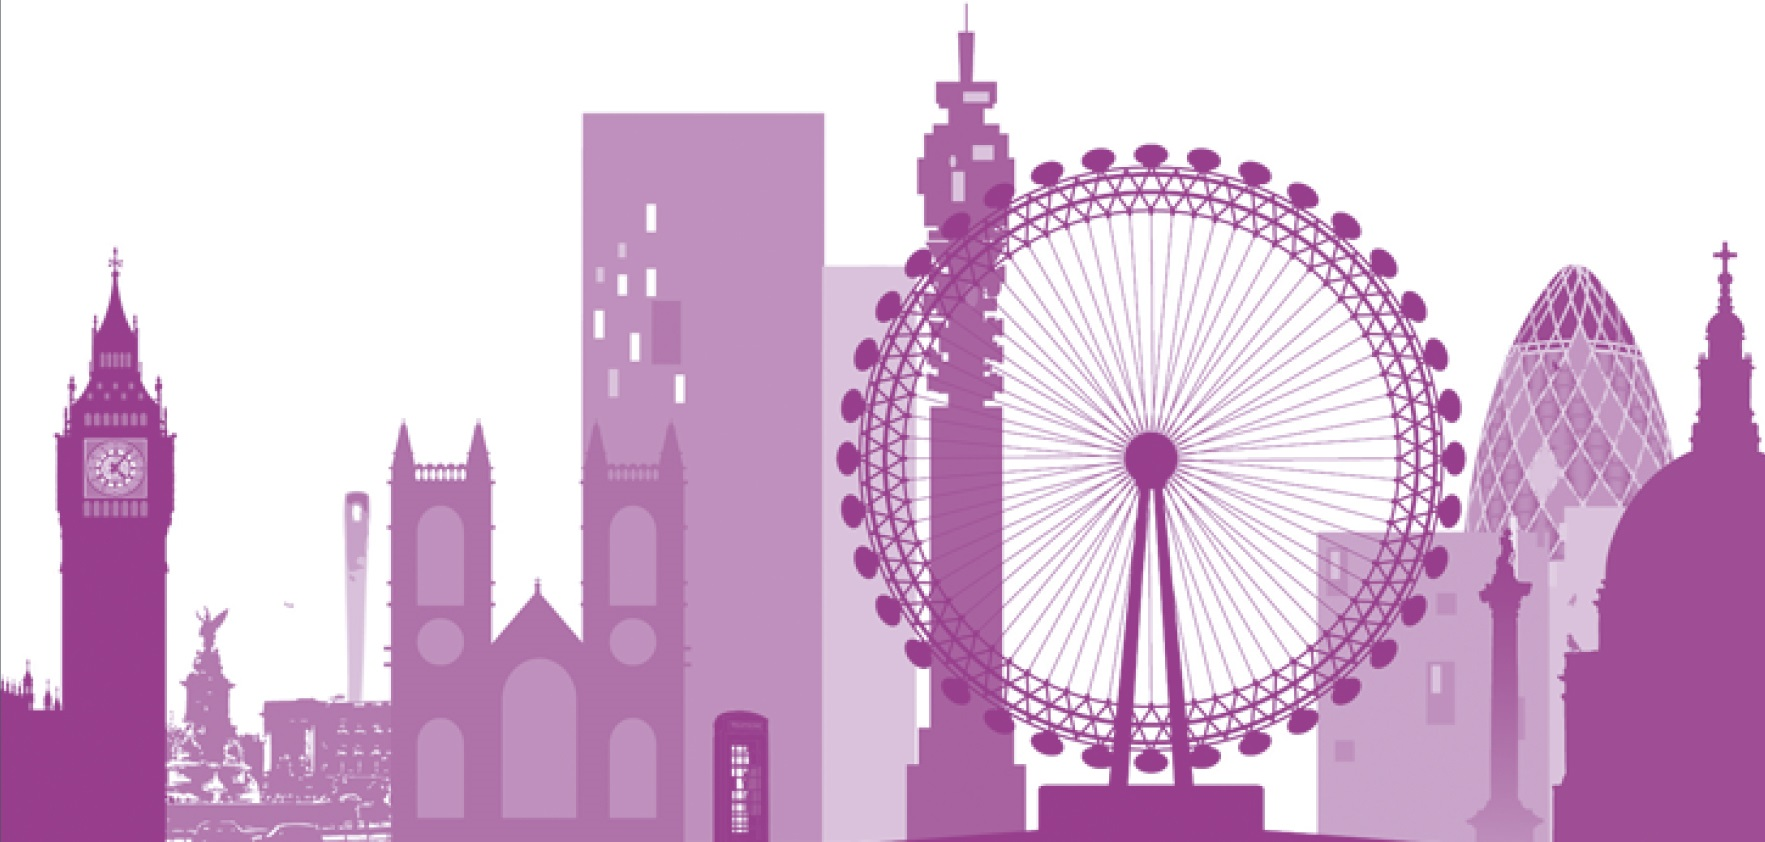 London skyline graphic